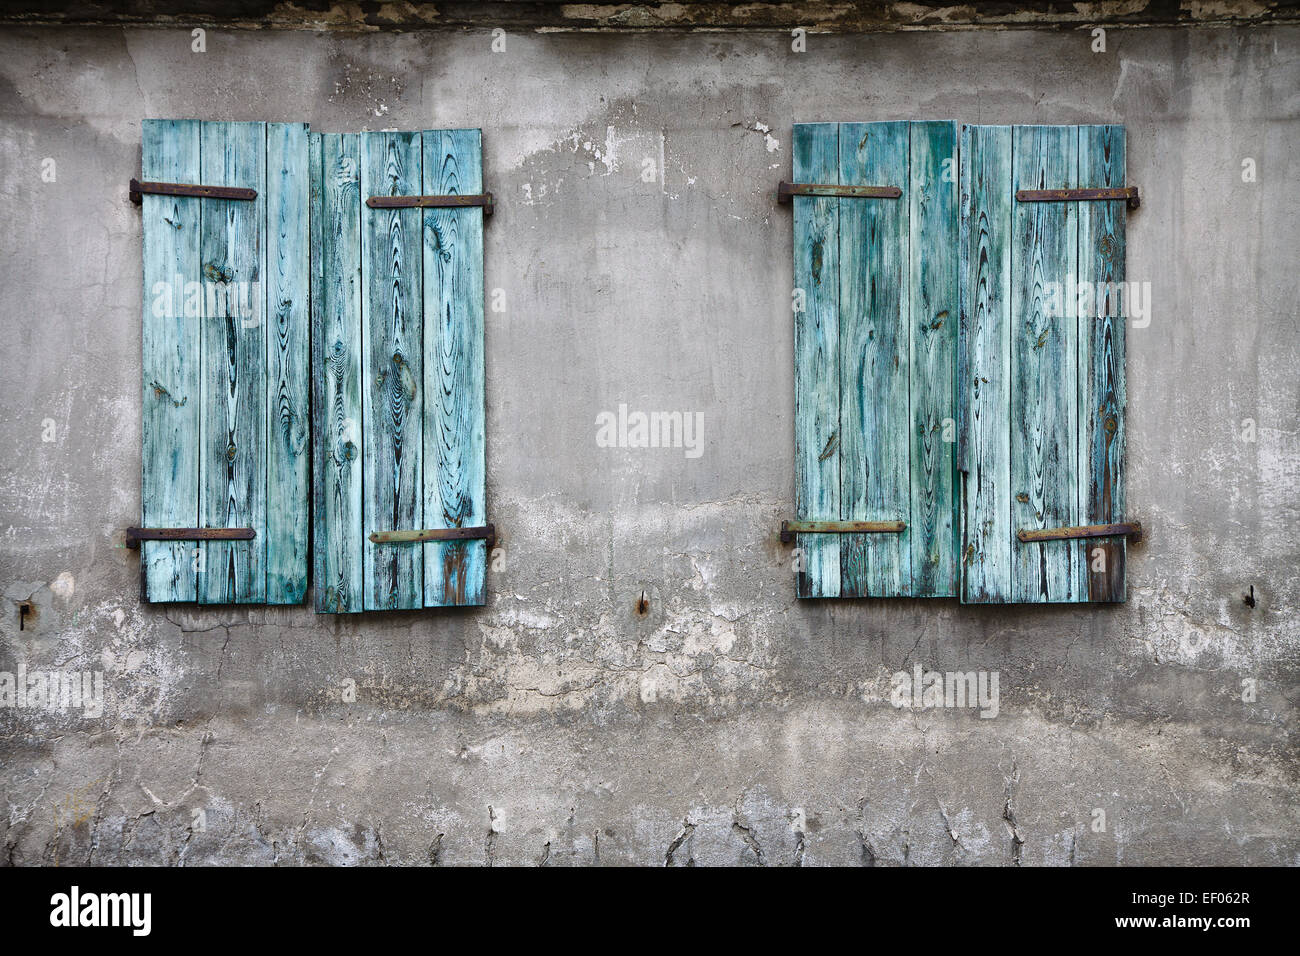 Detail of an old house. - Stock Image